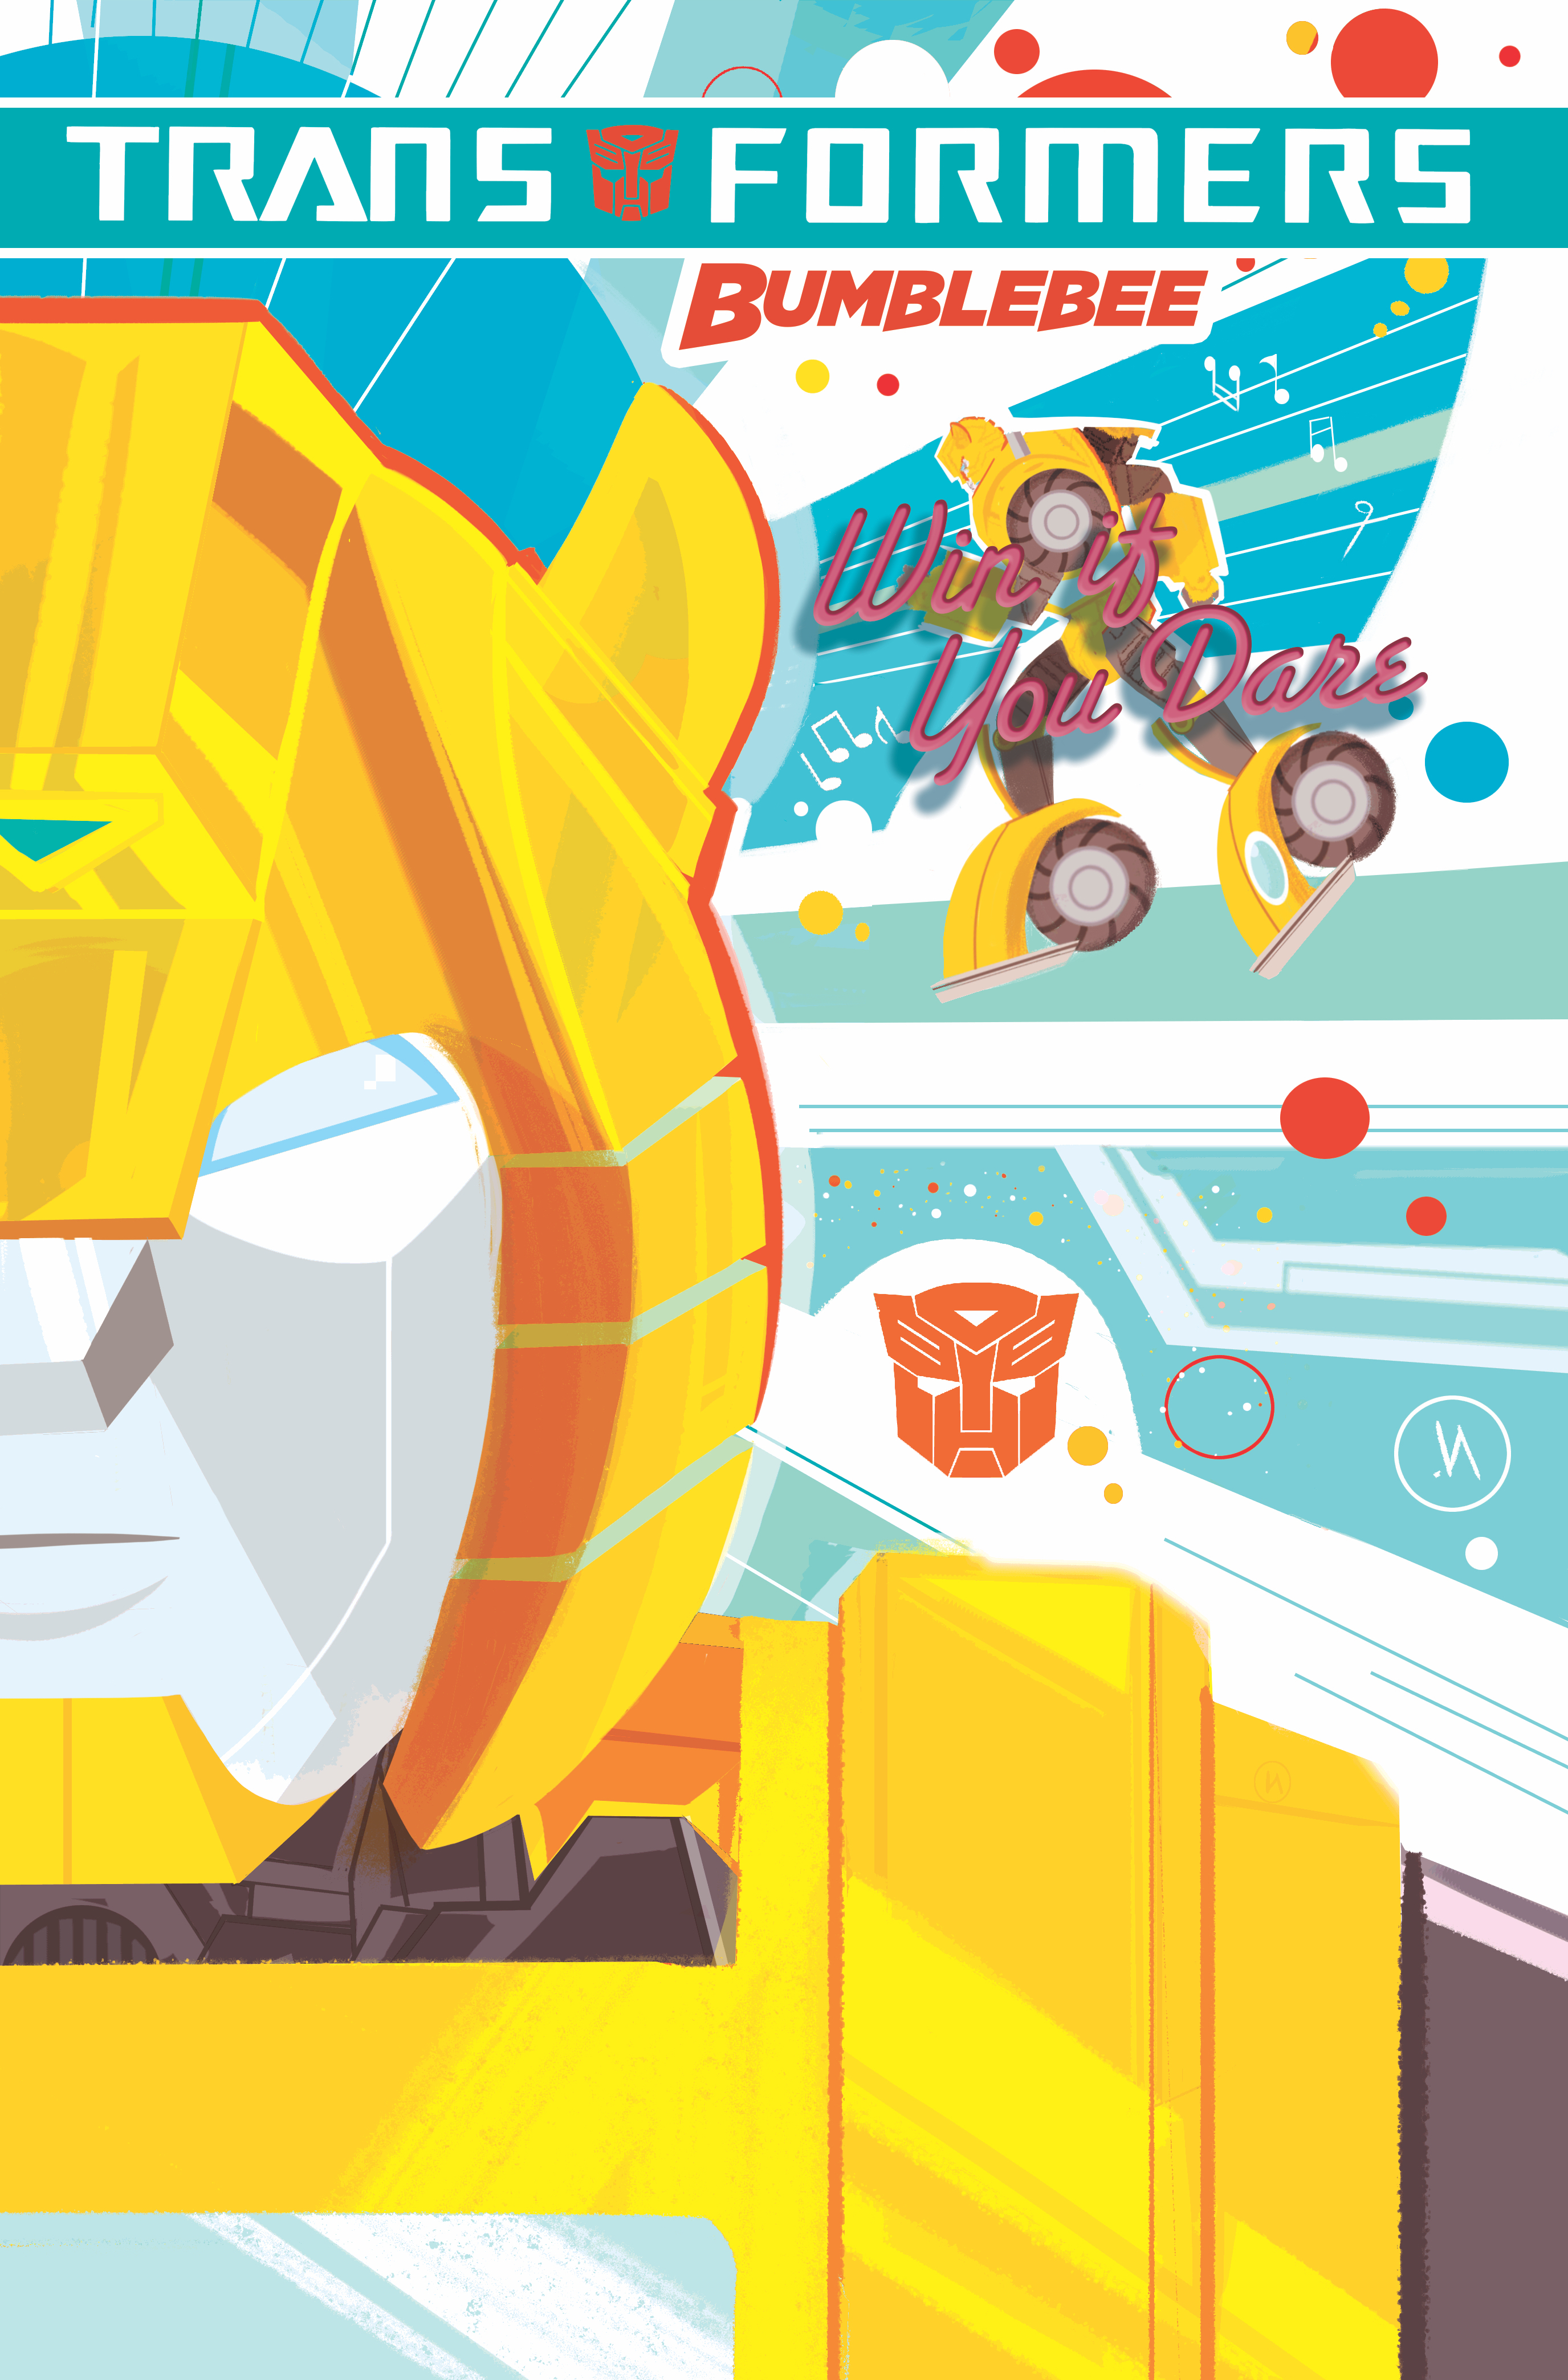 TRANSFORMERS BUMBLEBEE WIN IF YOU DARE TP